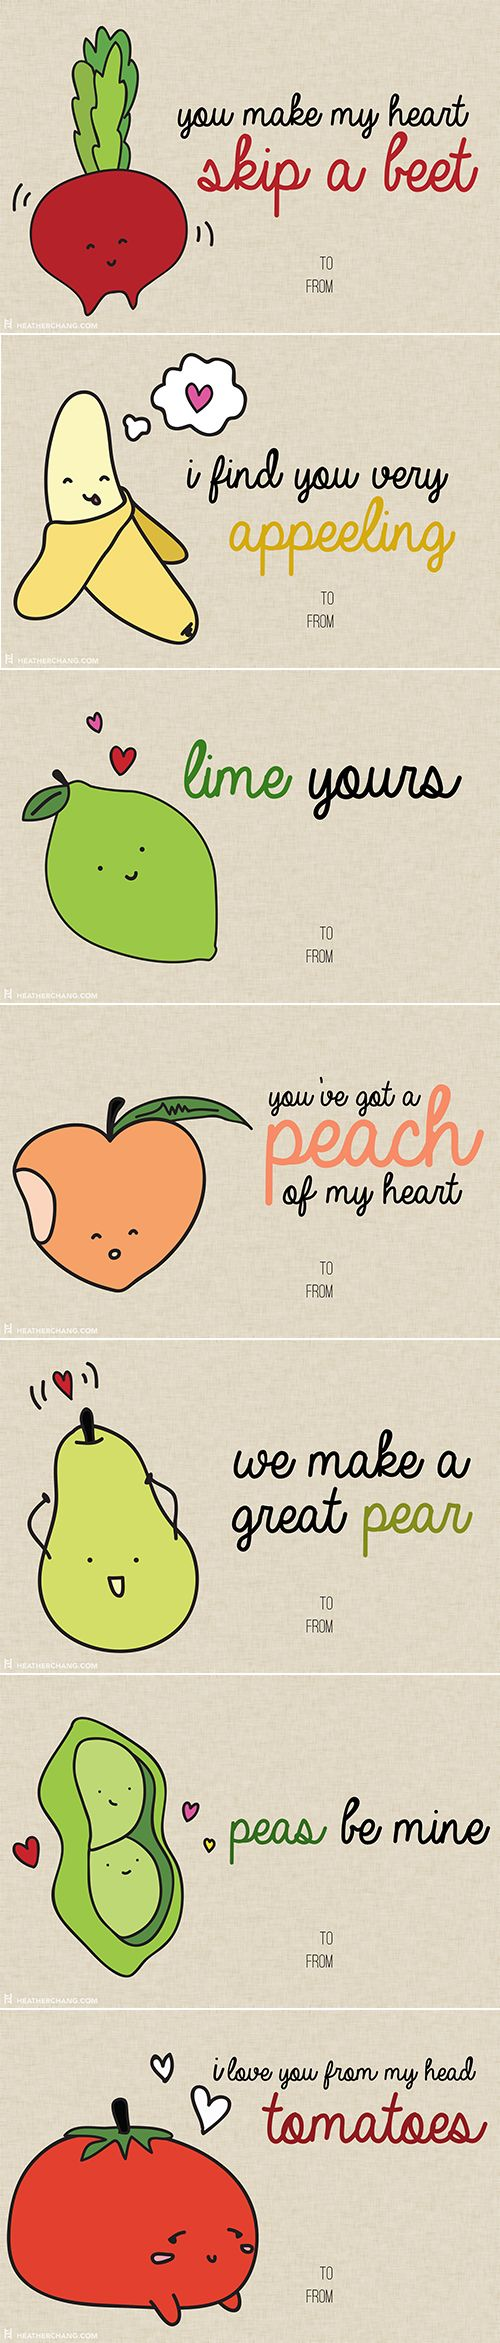 10 Printable V Day Cards With Food Puns So Bad Theyu0027re Almost Good. Happy  Valentines Day Quotes ...